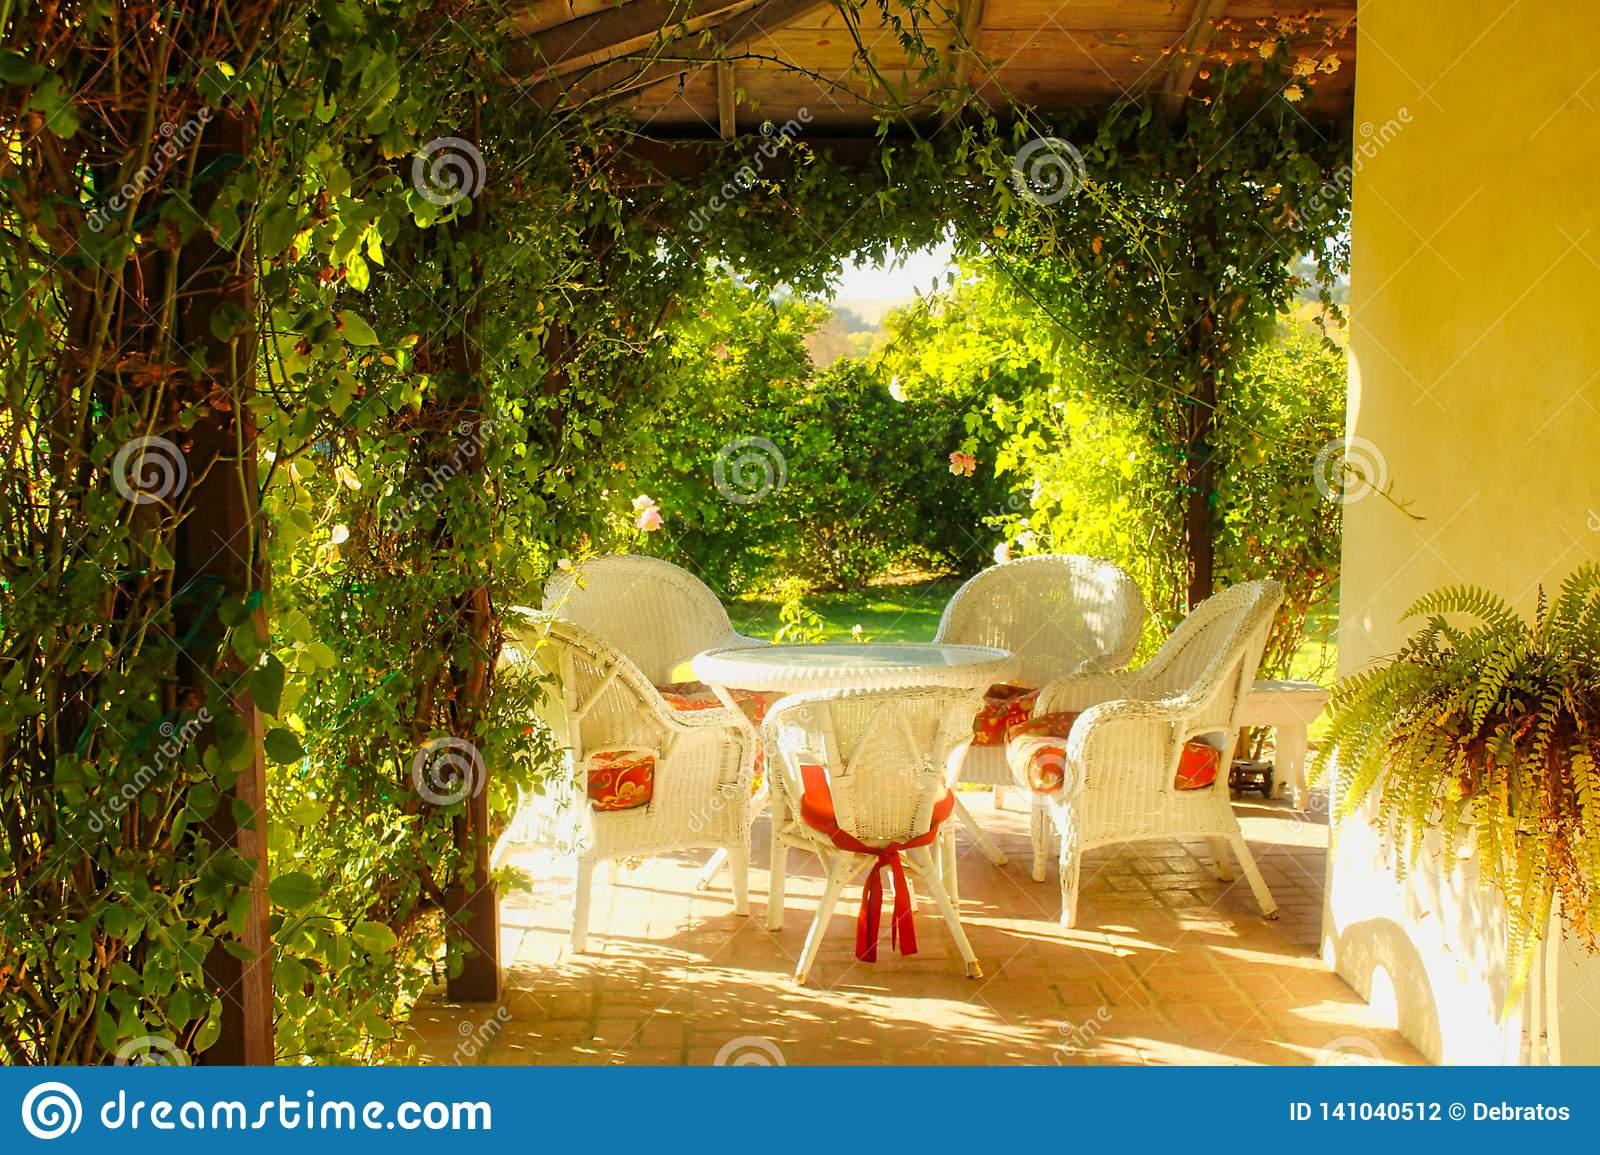 https www dreamstime com country style white wicker patio furniture red cushions table chair image141040512